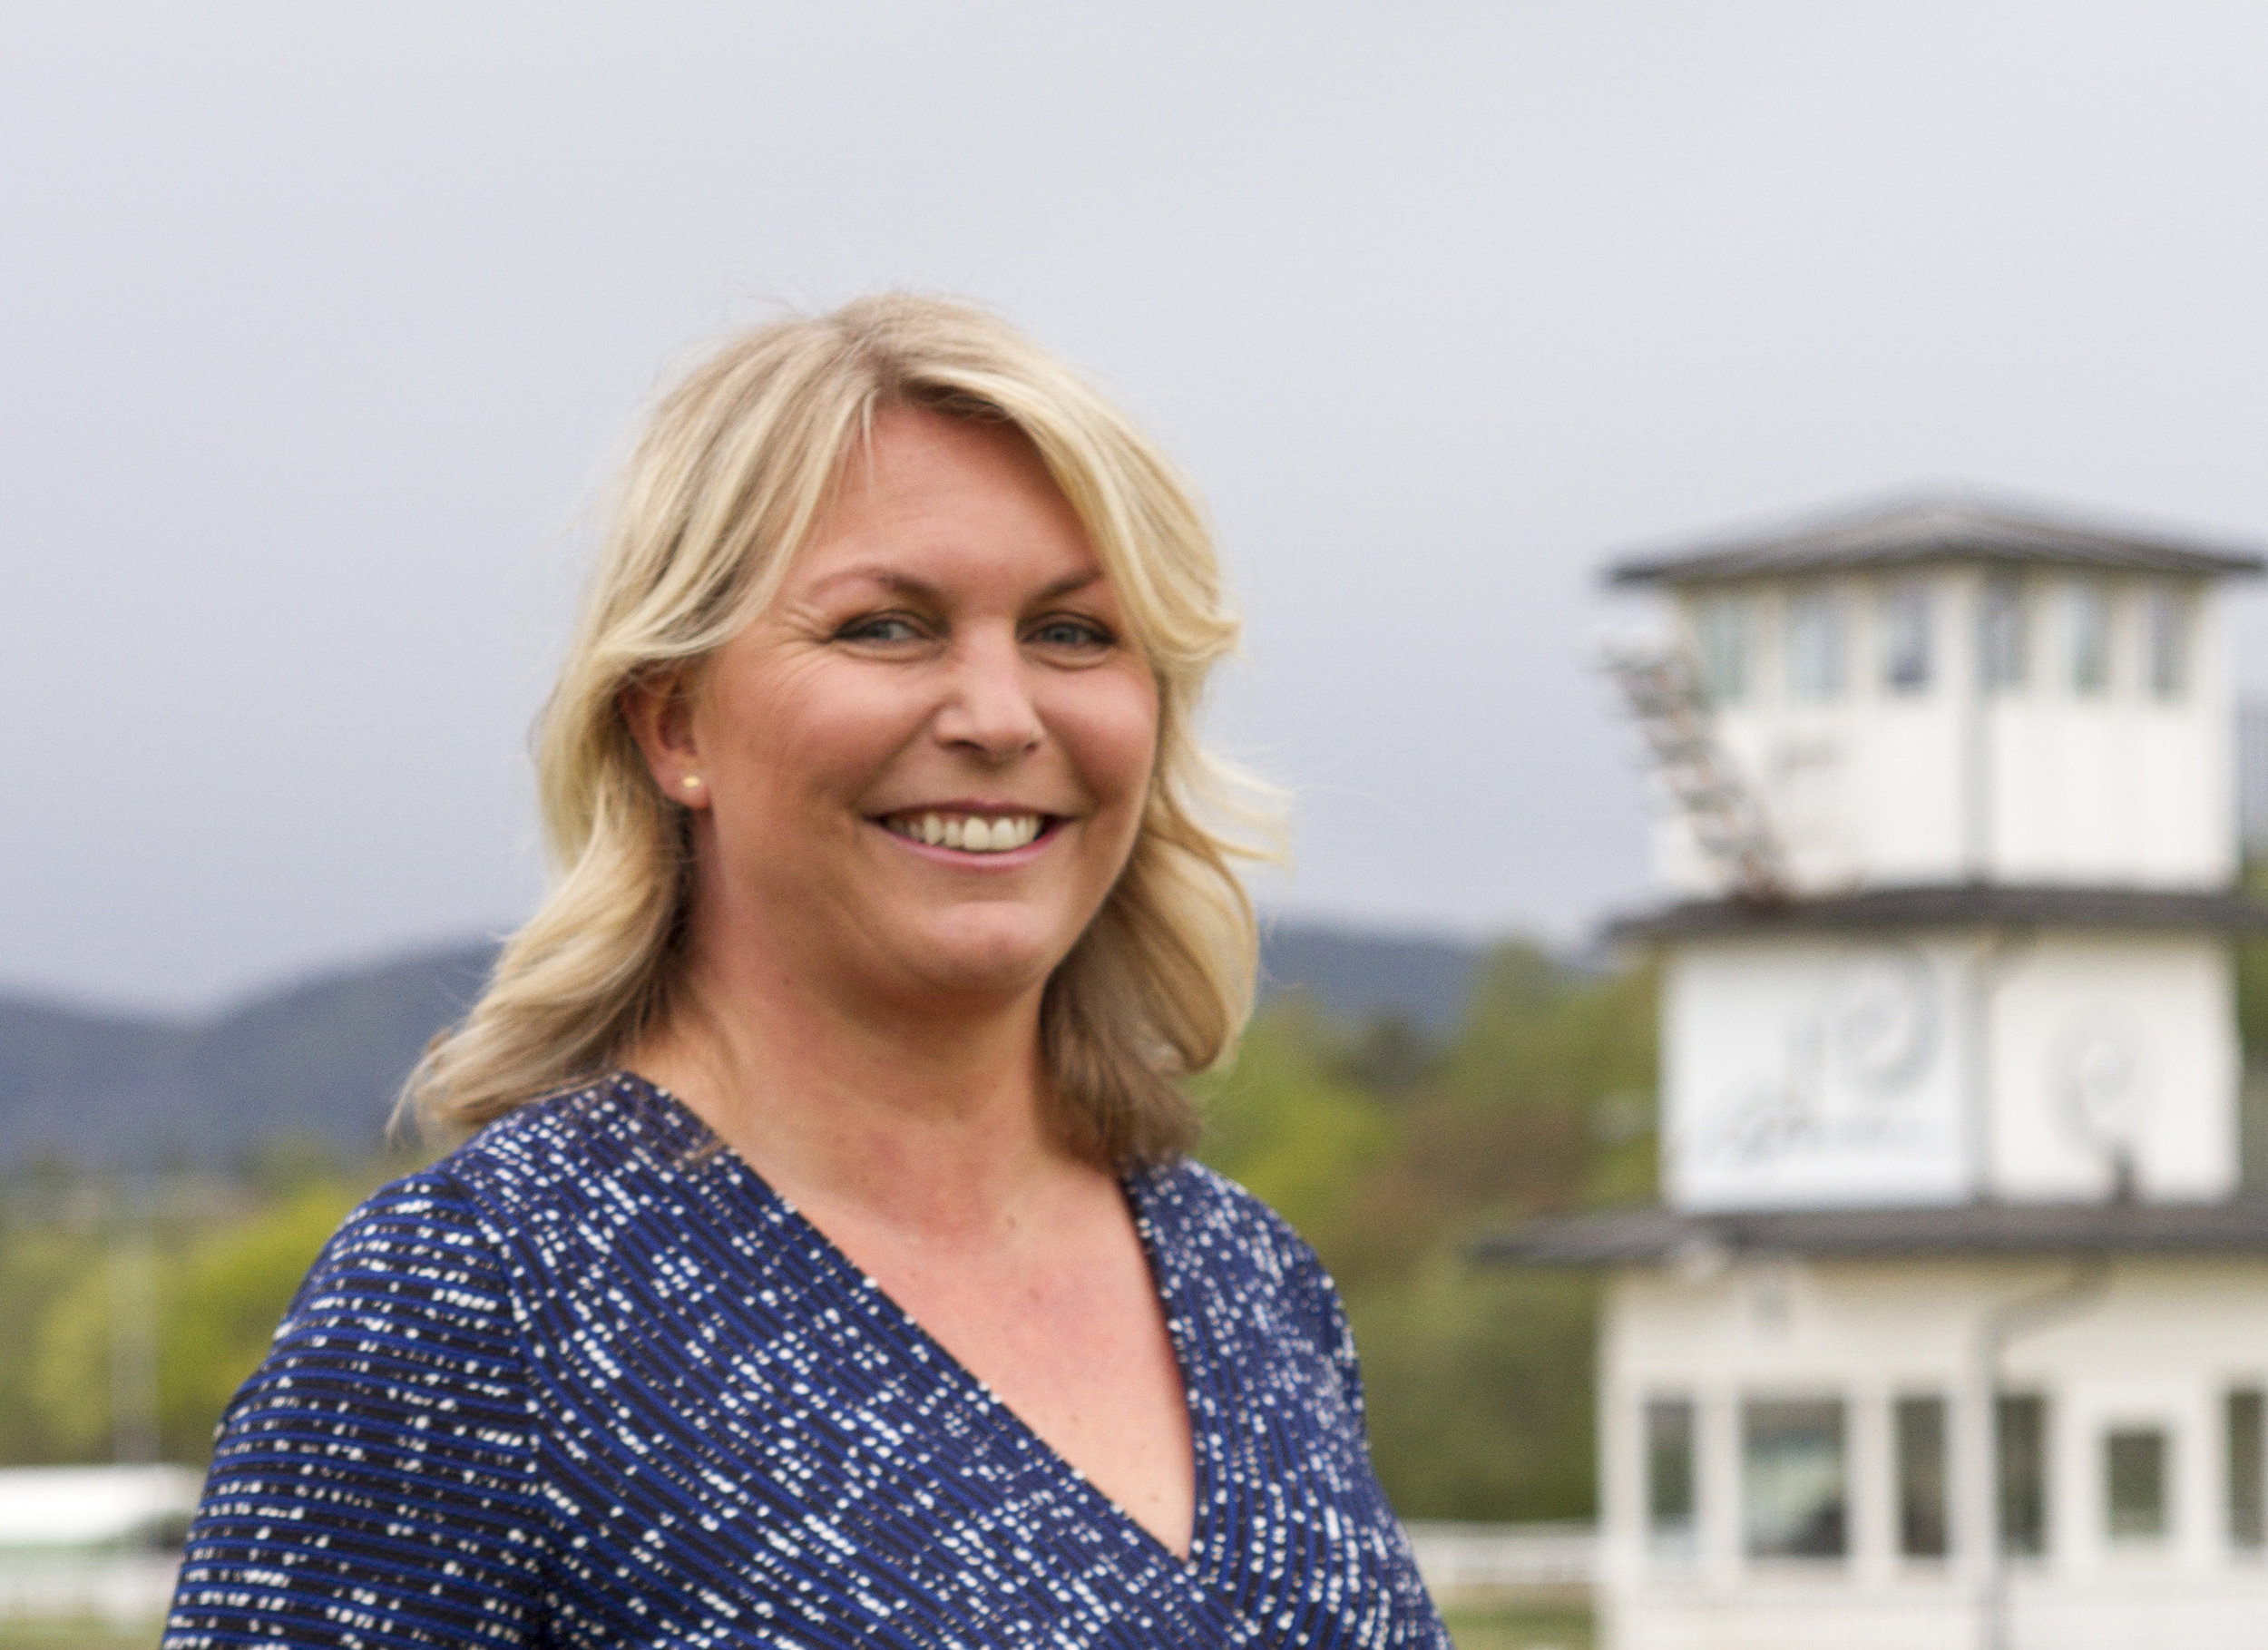 Liv Kristiansen, Racing Director of the Norwegian Jockey Club, has been elected to the EMHF's Executive Council.